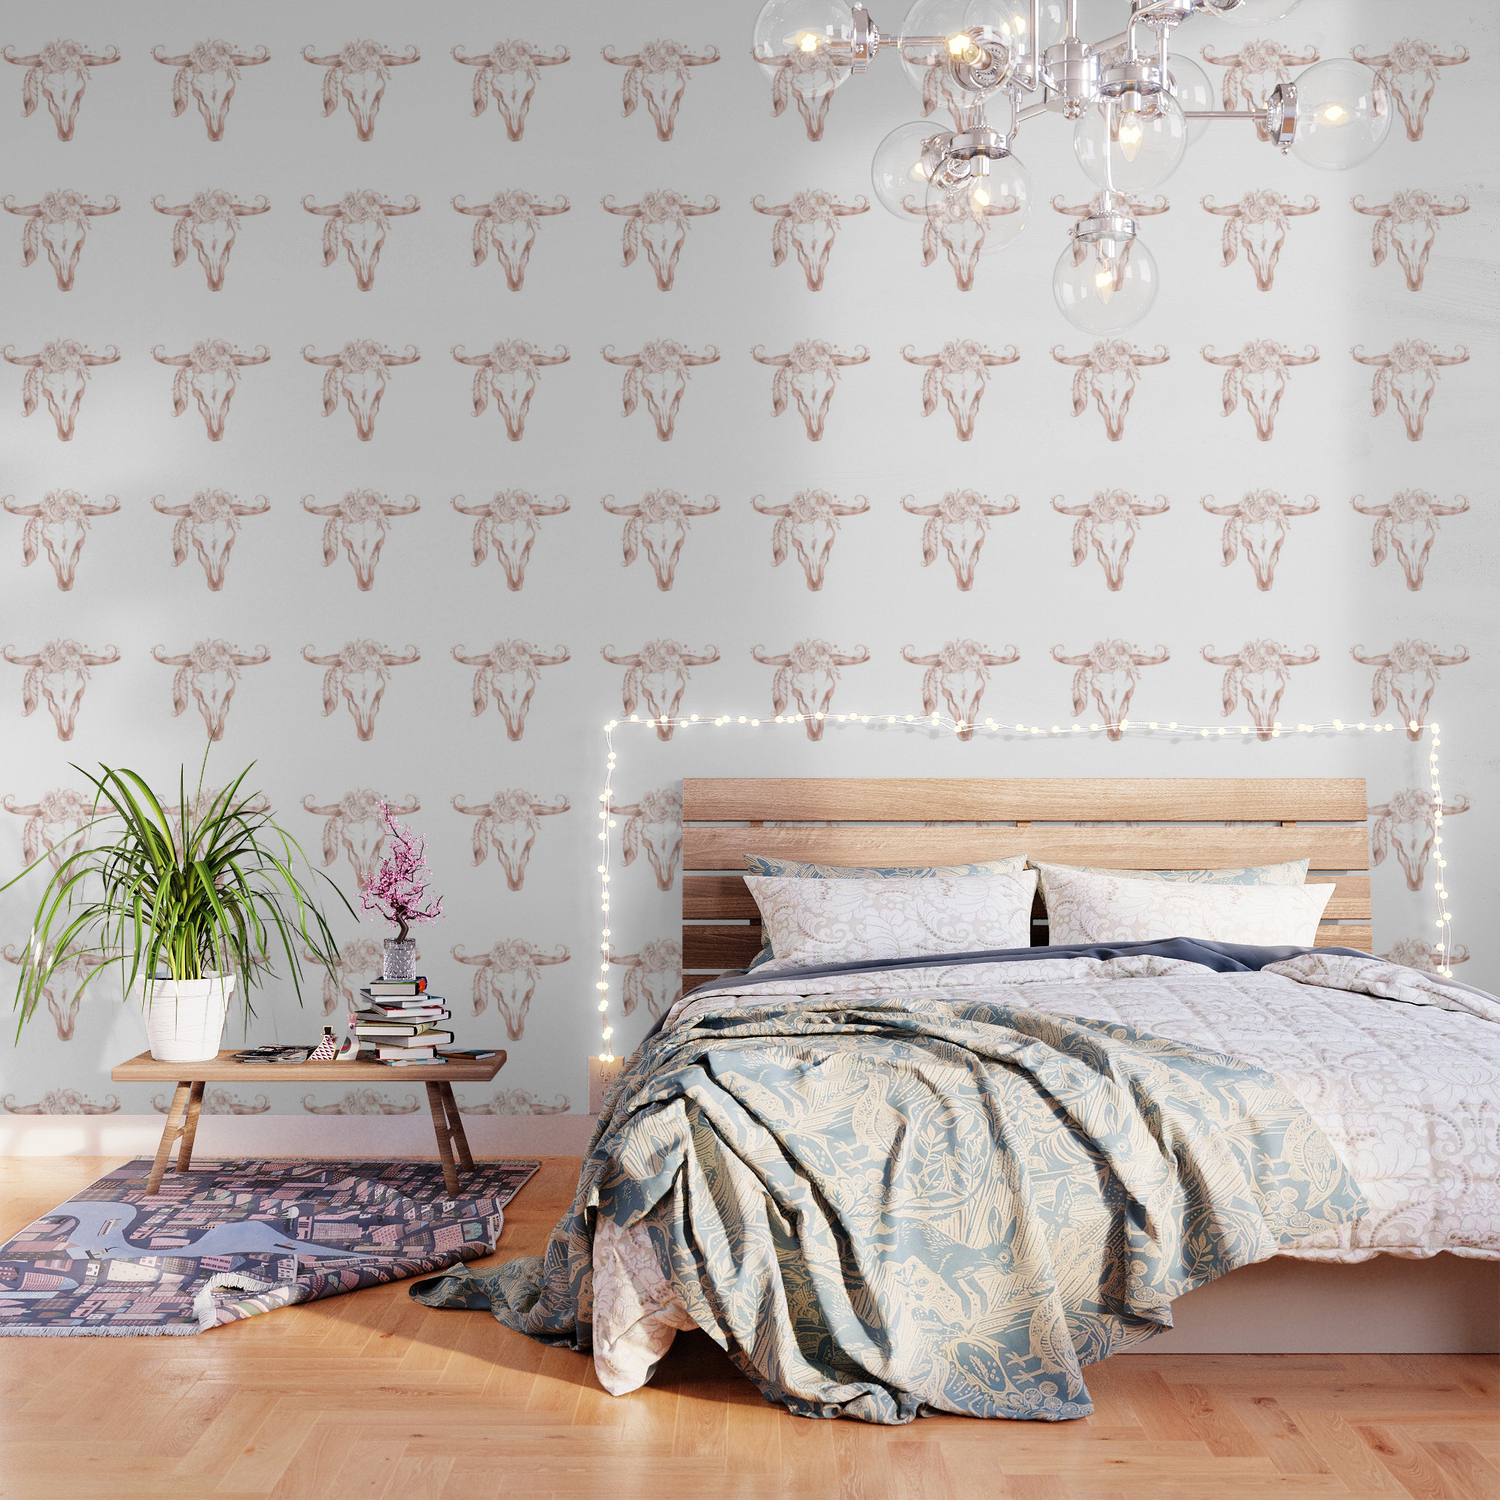 Rose Gold Bull Skull with Pink Feather Flowers Wallpaper by 1500x1500